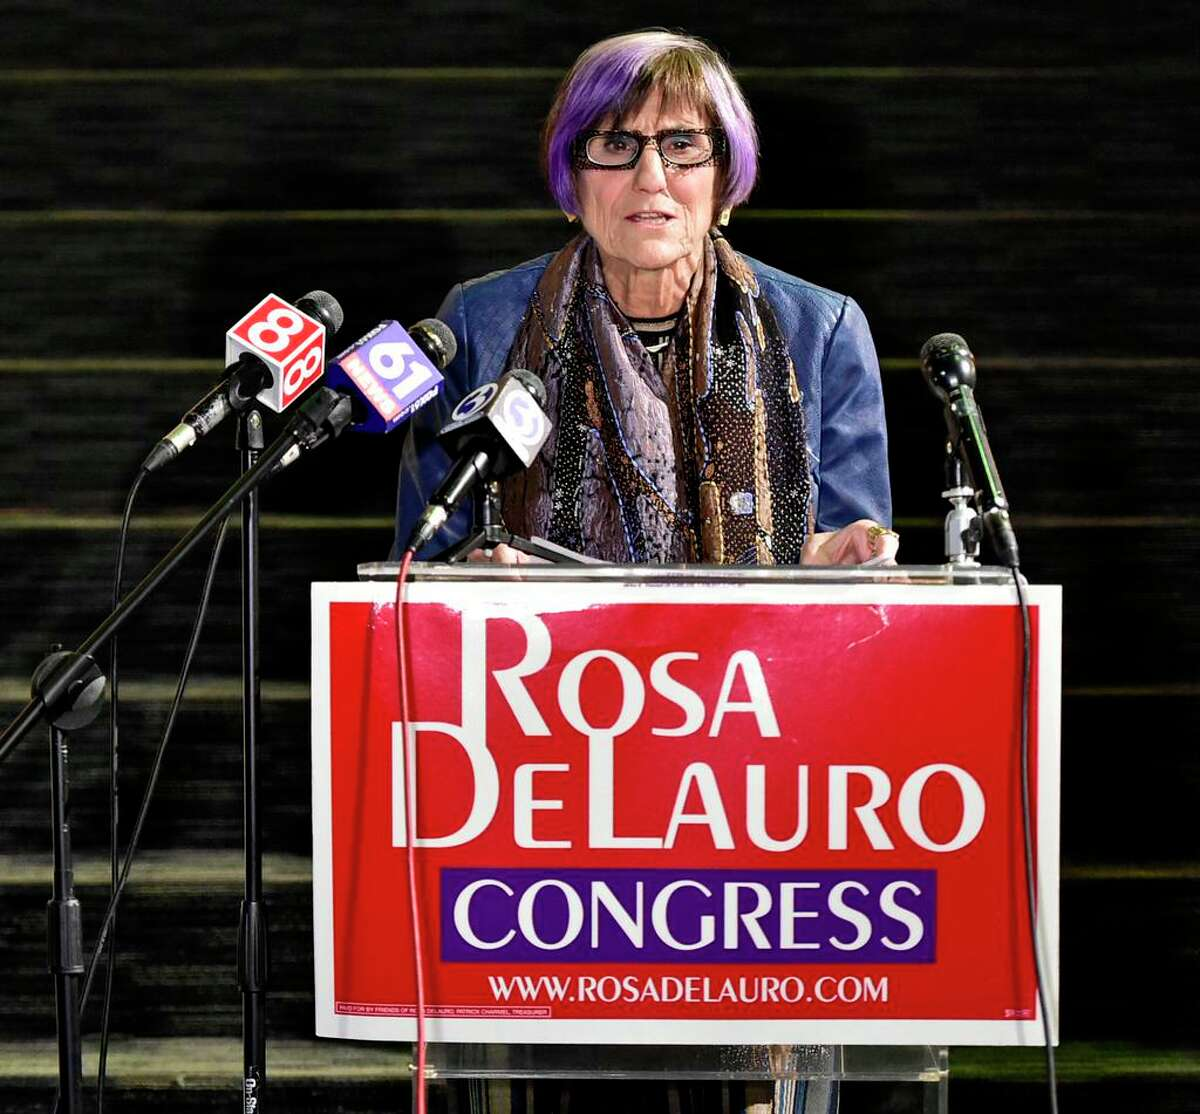 U.S. Rep. Rosa DeLauro, D-3, running for her 16th term, announces her win over Republican candidate Margaret Streicker Tuesday night at the Shubert Theatre in New Haven.